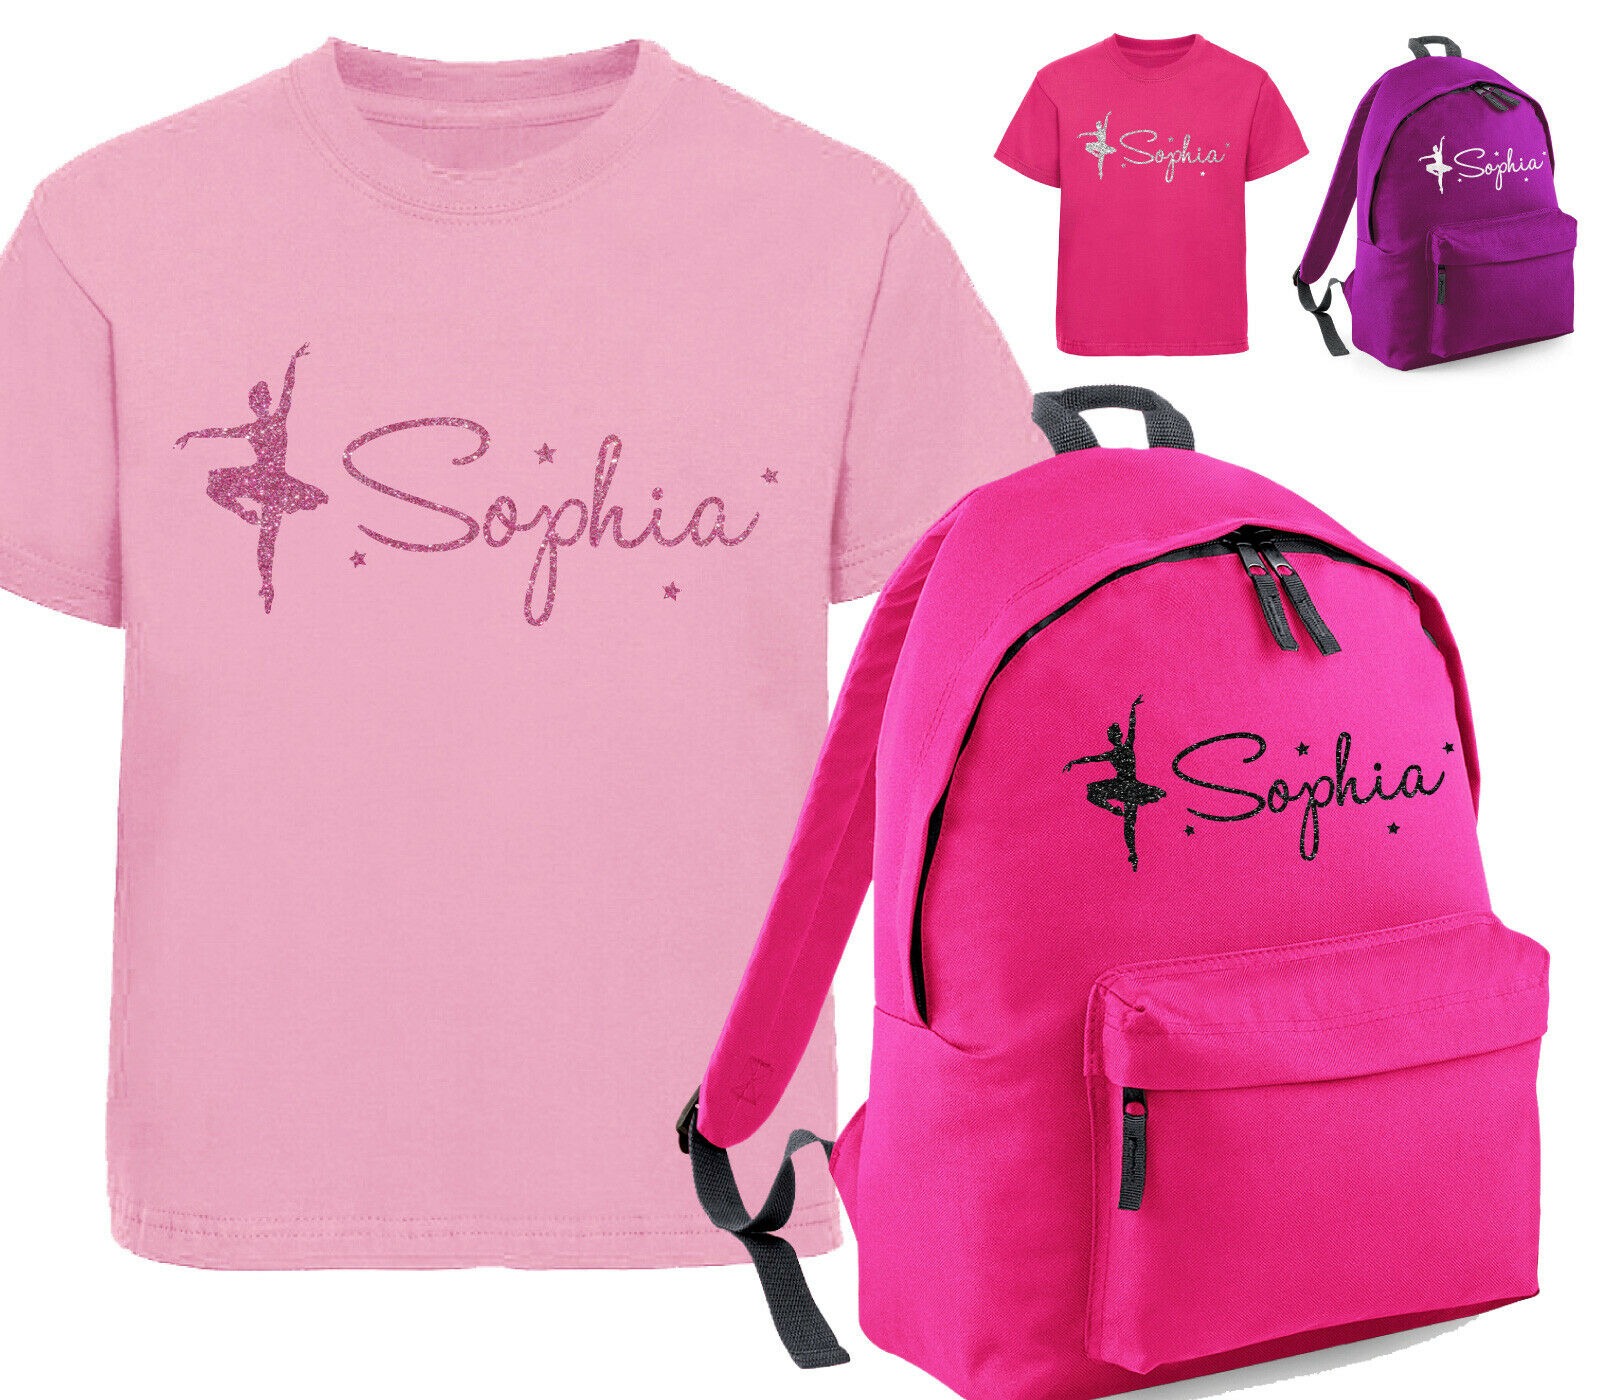 beyondsome Personalised Girls Kids Purple Ballet Shoes Hoodie /& Baby Pink Dance Kit Bag Set